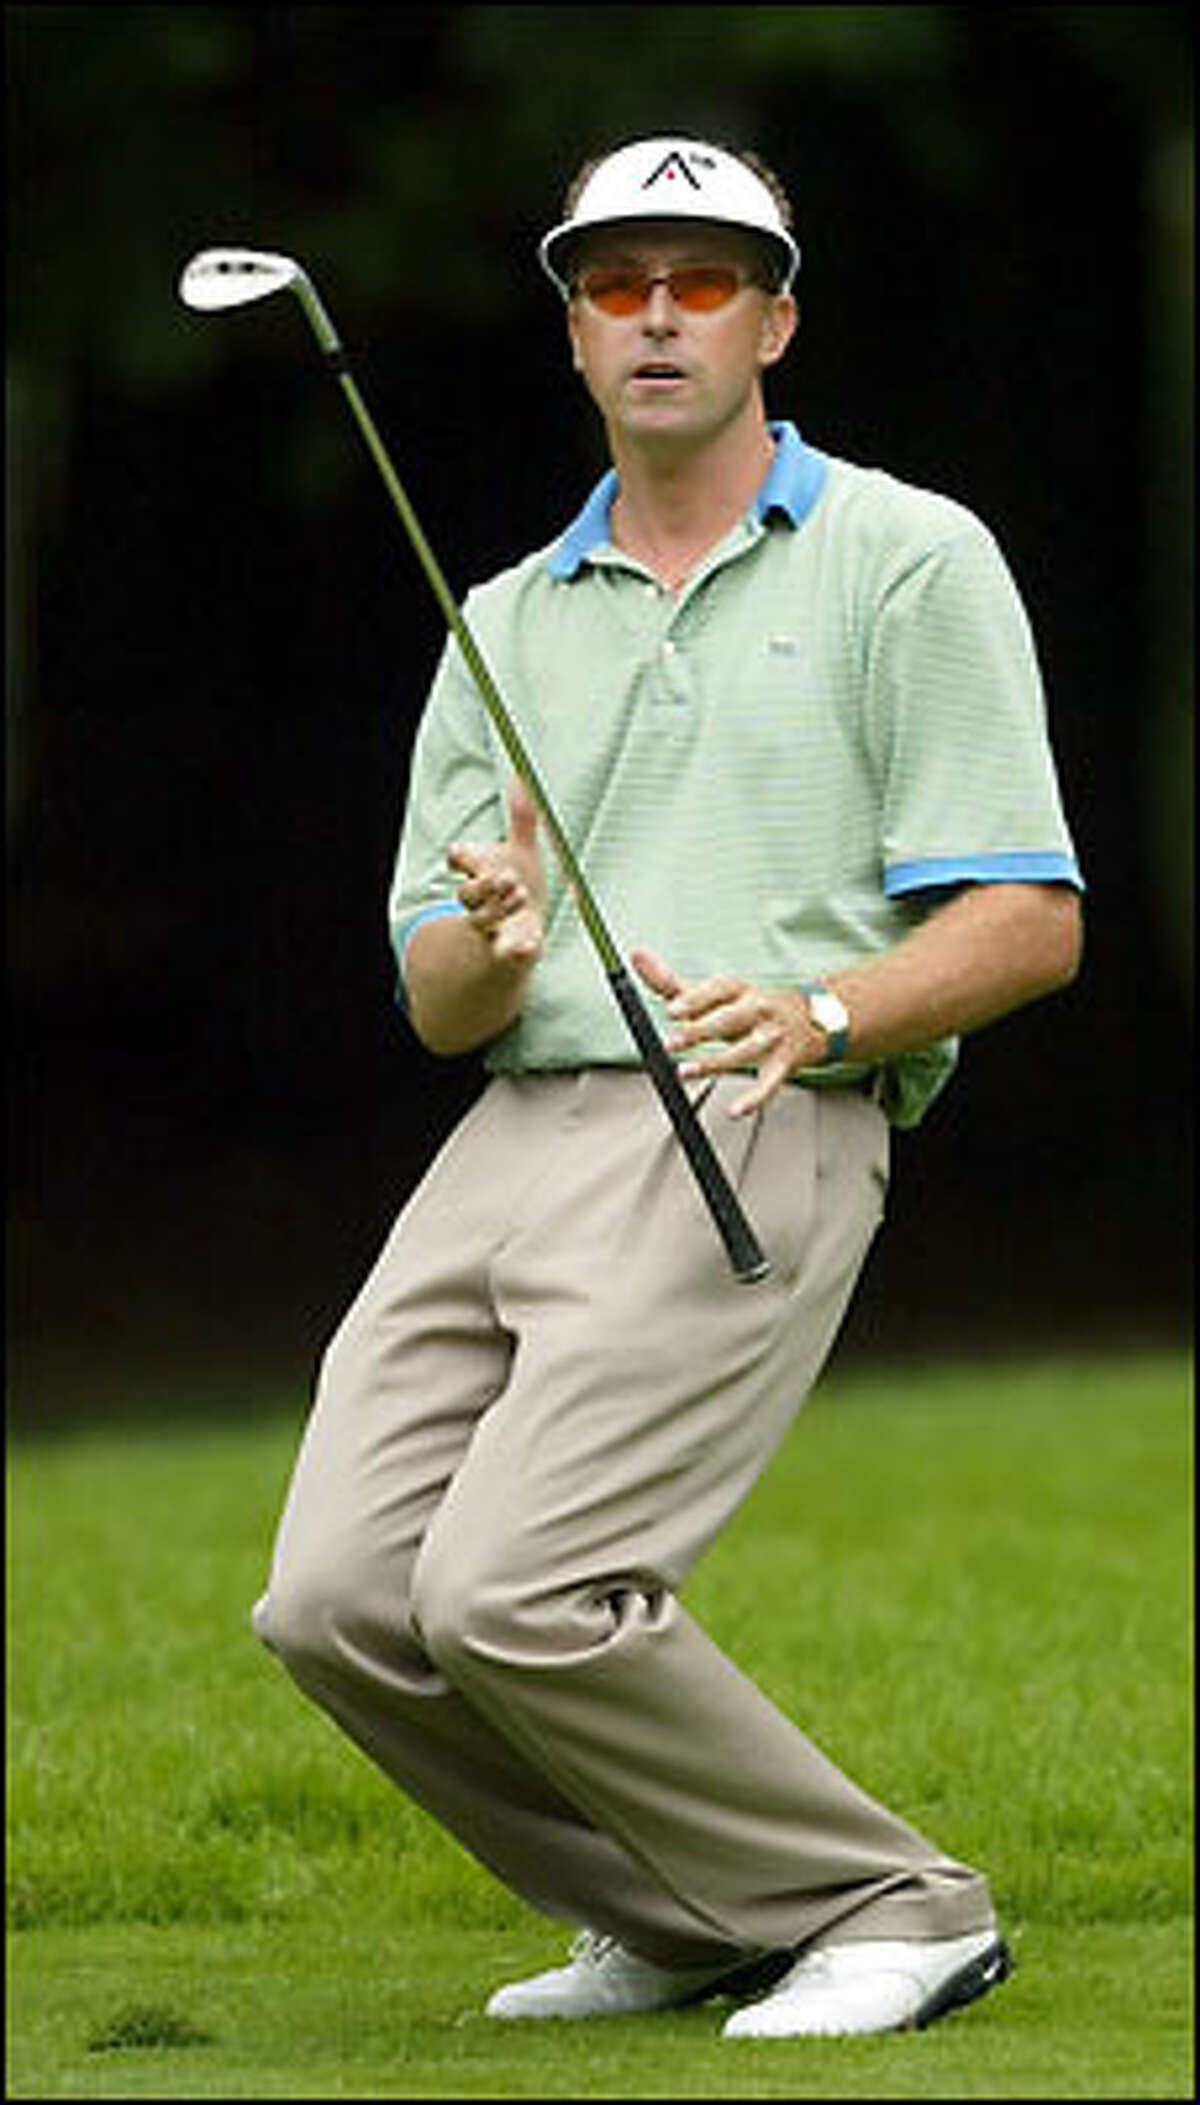 Robert Allenby from Austrralia reacts to a poor second shot on No. 11.